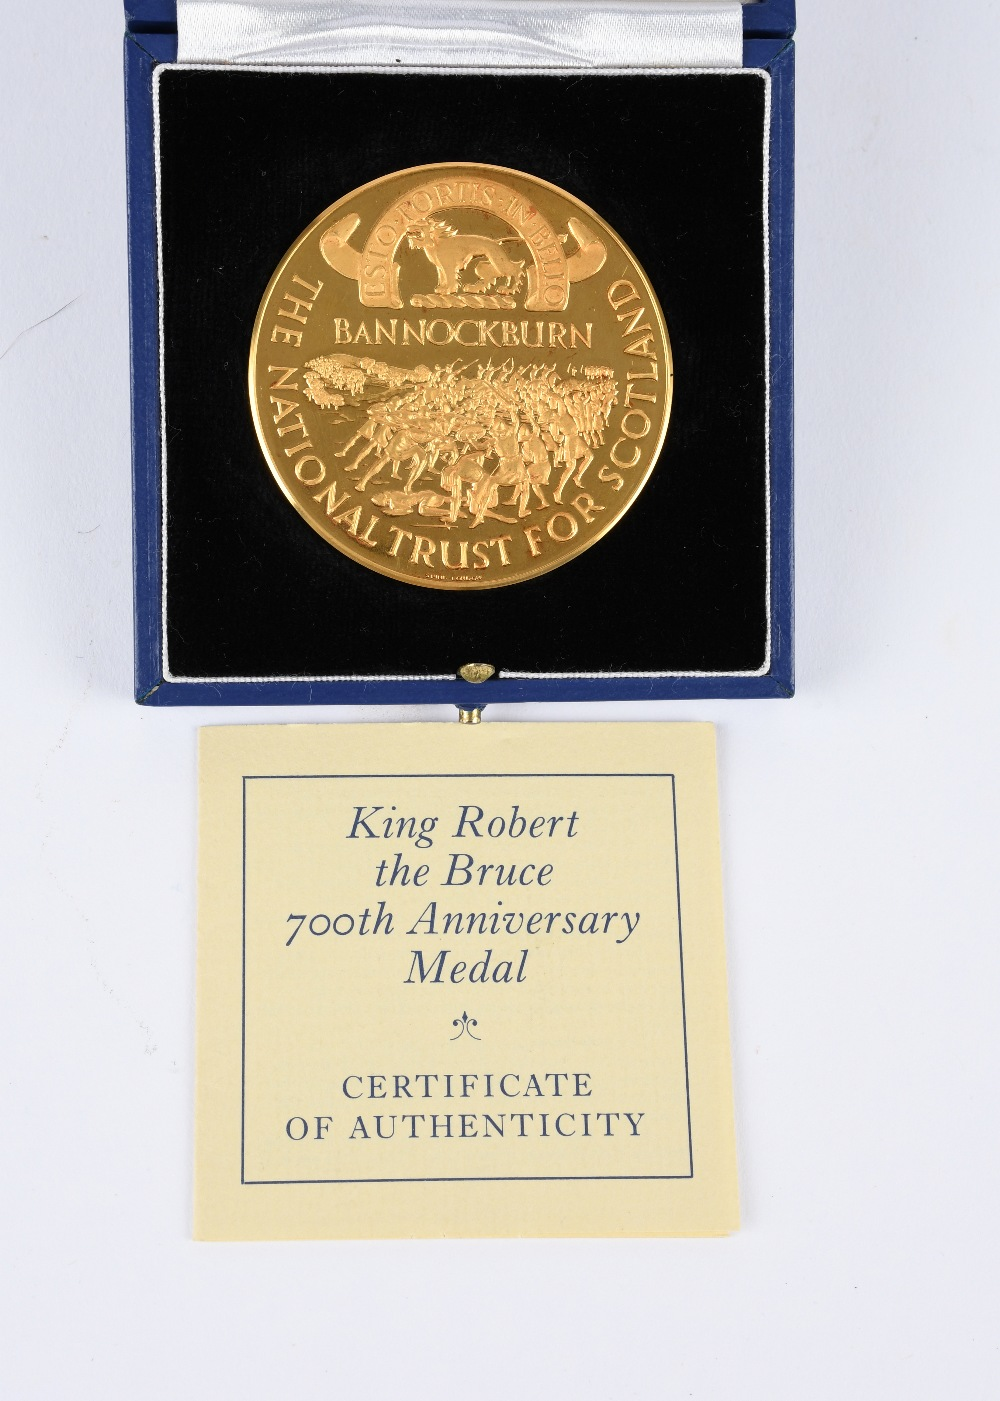 The National Trust for Scotland: Battle of Bannockburn 700th Anniversary, a 22 carat gold medal, - Image 3 of 3